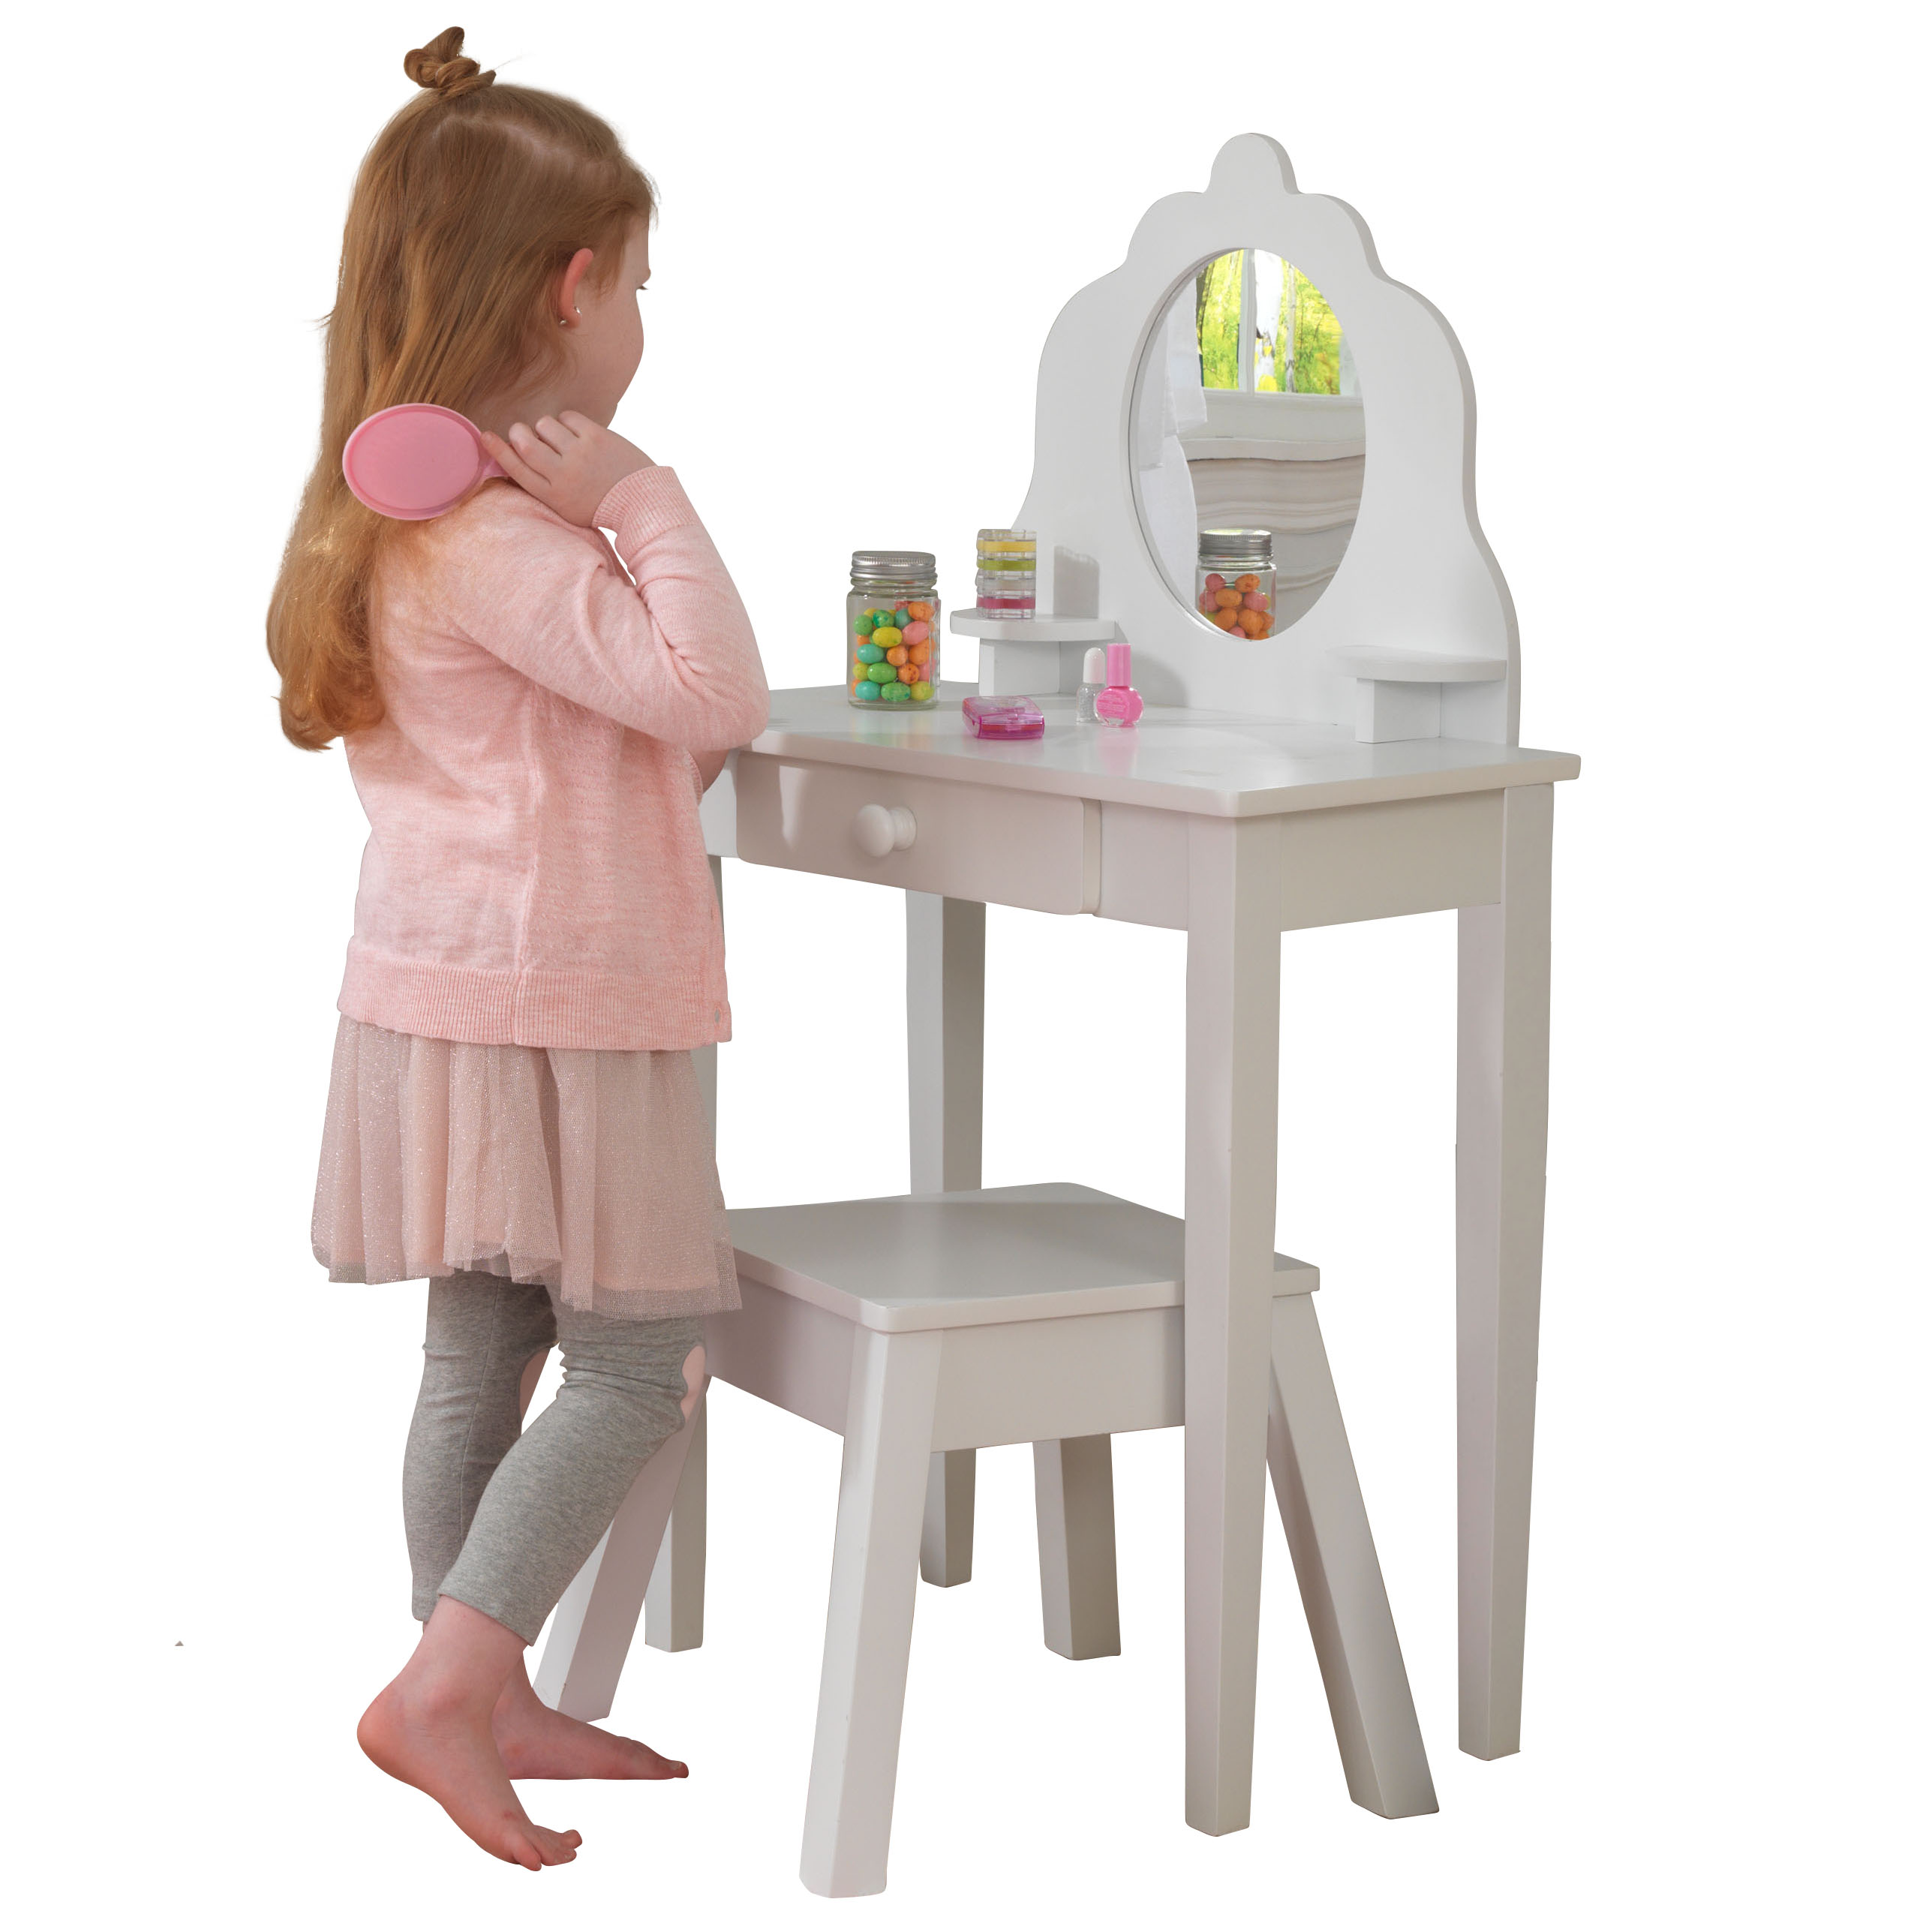 Kidkraft Medium Bedroom Vanity with Stool White by KidKraft